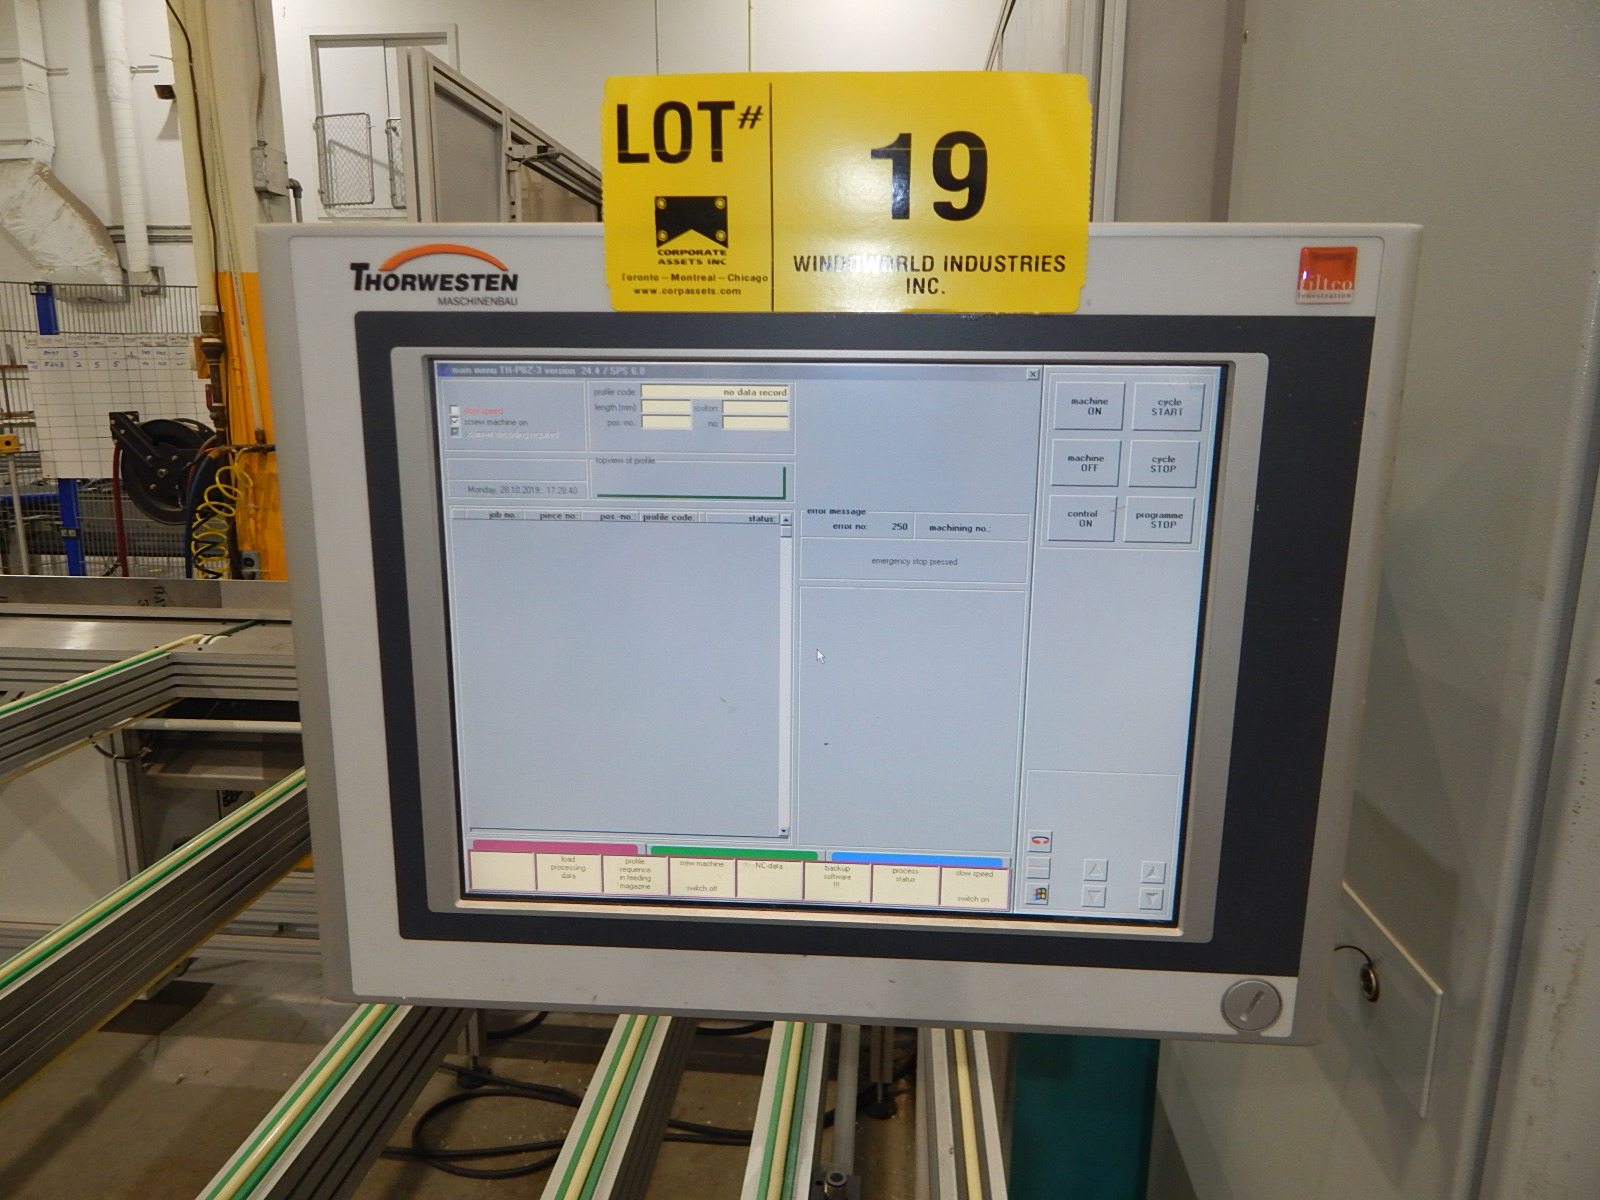 THORWESTERN (2008) PBZ-3 CNC PROFILE MACHINING CENTER WITH WINDOWS PC BASED AR010 TOUCH SCREEN CNC - Image 2 of 9